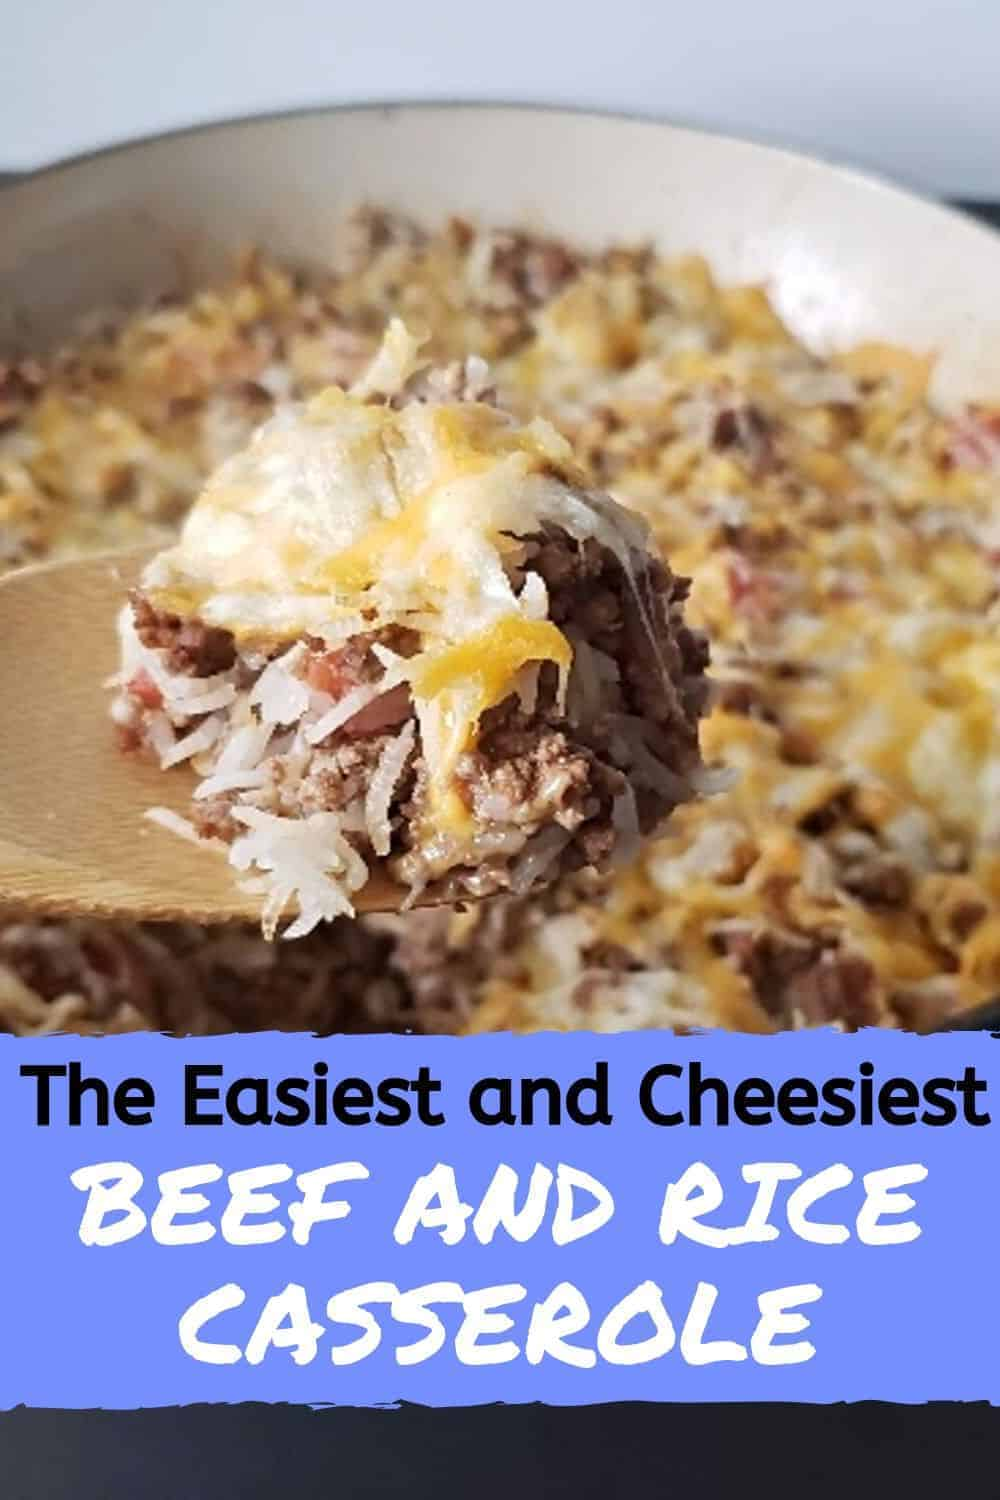 Spoon of easy cheesy beef and rice casserole